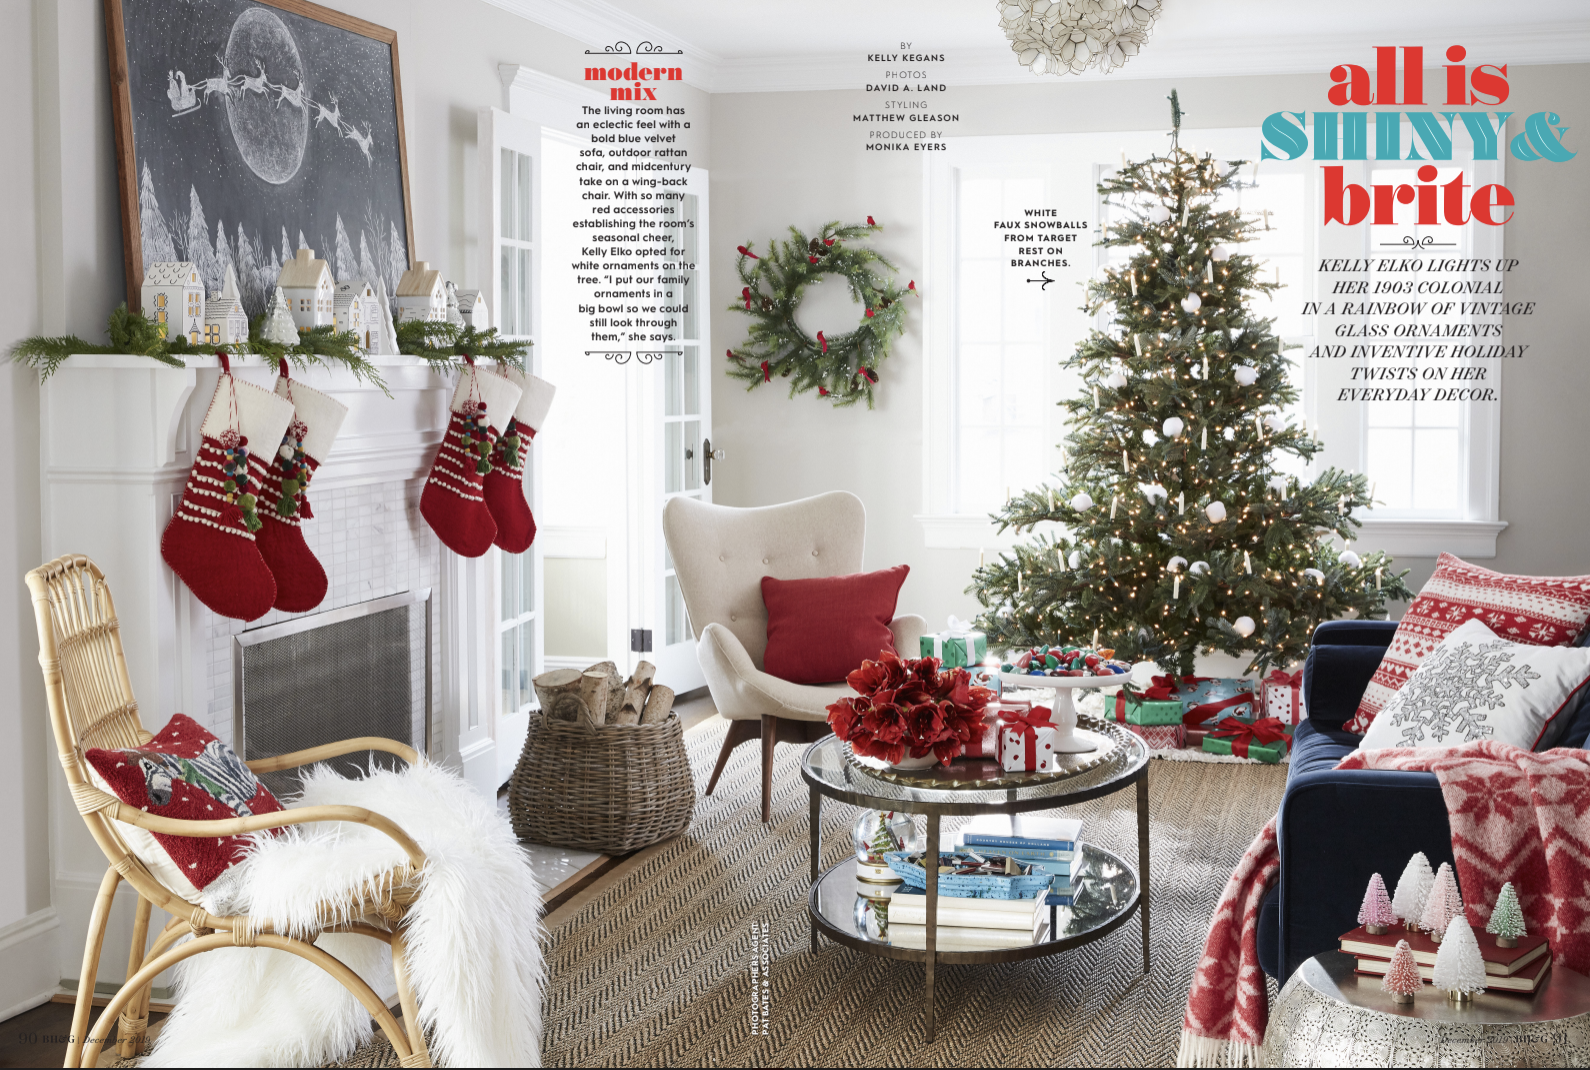 Better Homes & Gardens Christmas feature kellyelko.com #christmasideas #christmasdecor #christmasdecorations #christmashome #christmashometour #christmastree #farmhousechristmas #vintagechristmas #christmasmantel #christmaschalkboard #chalkart #christmasstockings #christmaslivingroom